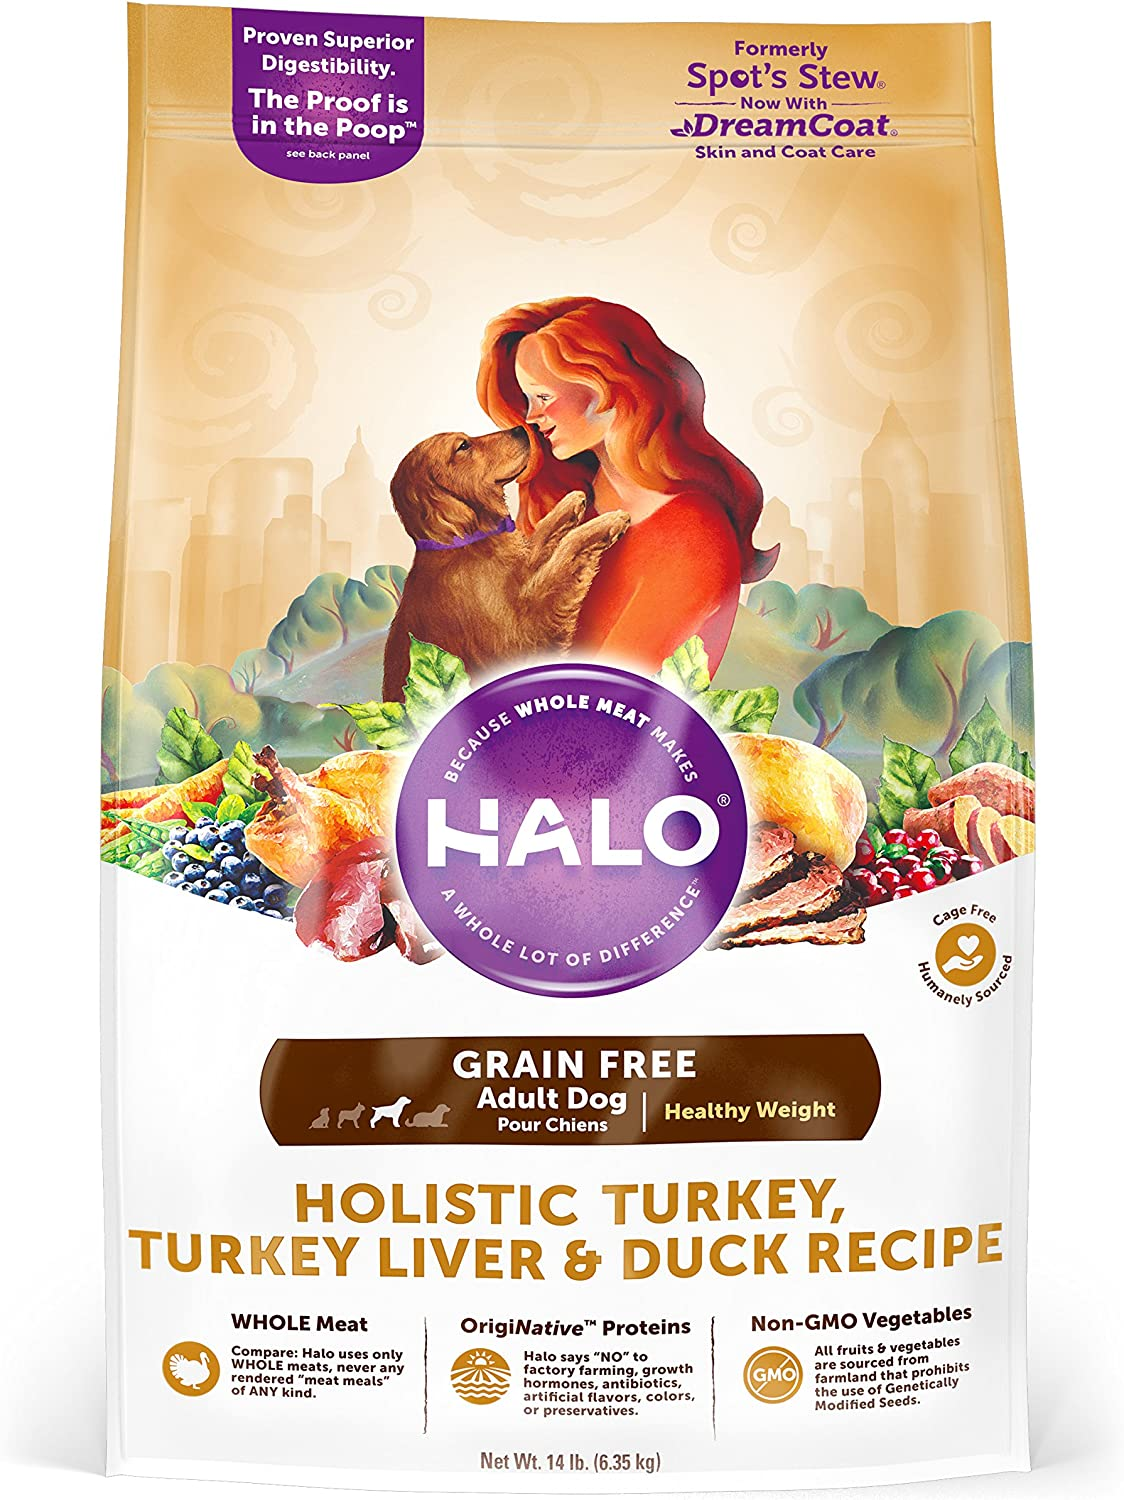 Halo Spot's Stew Healthy Weight Grain Free Turkey and Duck Recipe for Dogs, 14Pound